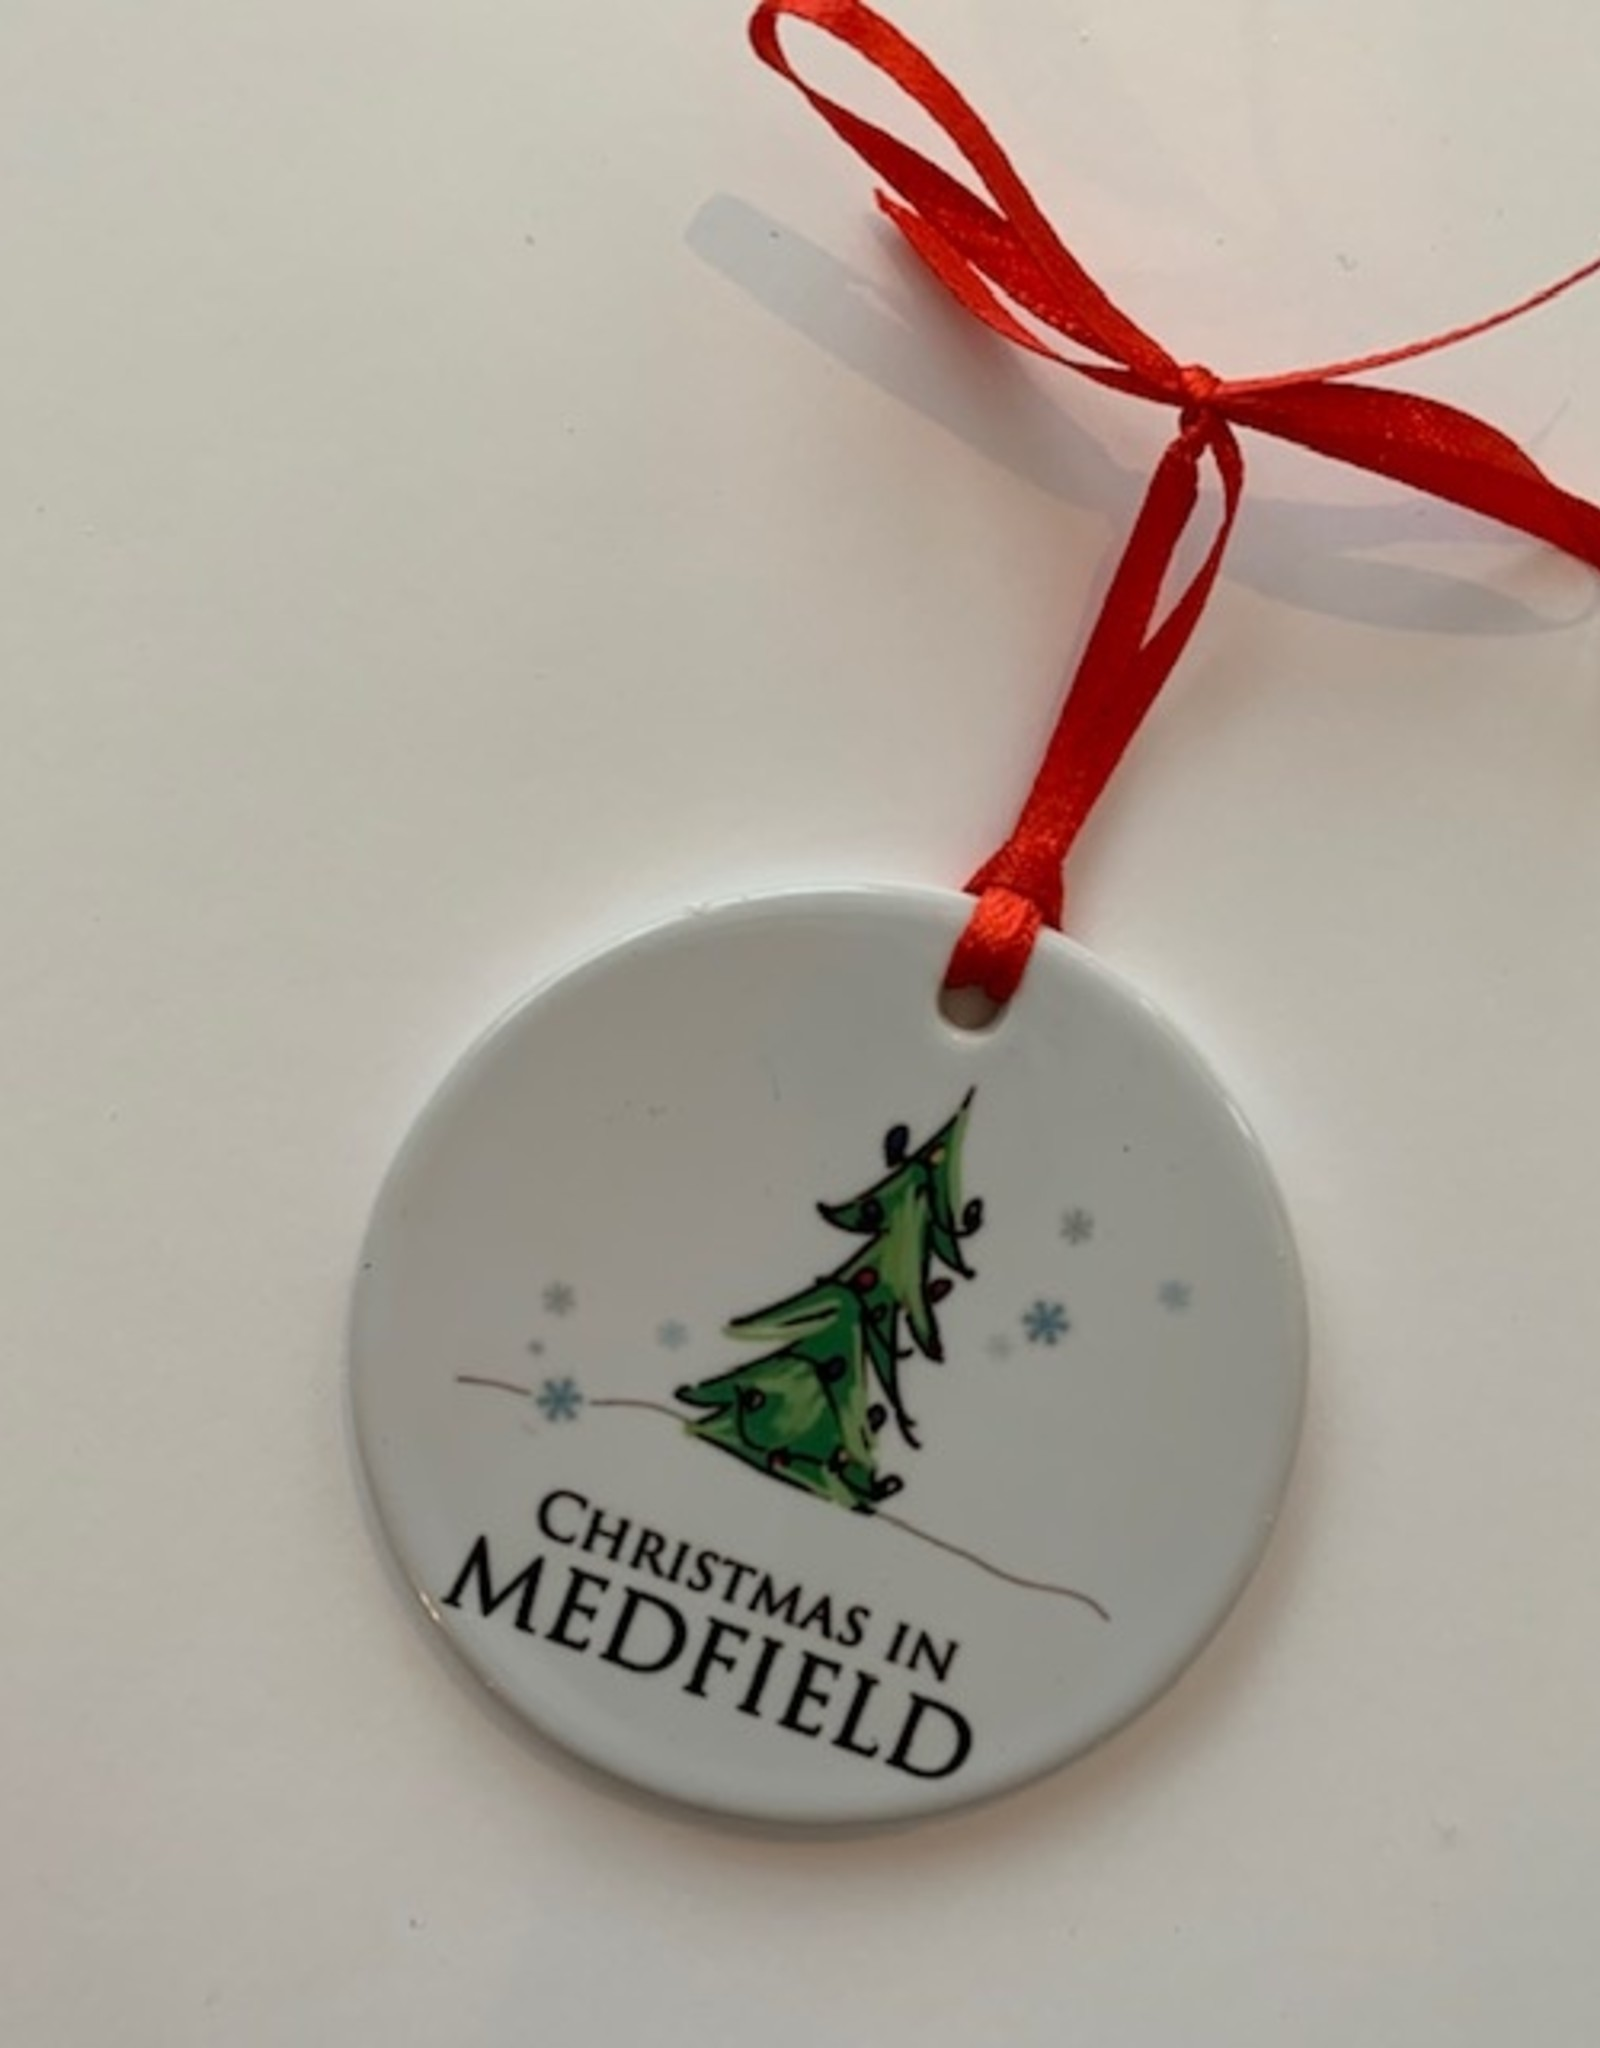 PhiloSophie's - Christmas in Medfield Tree Ornament